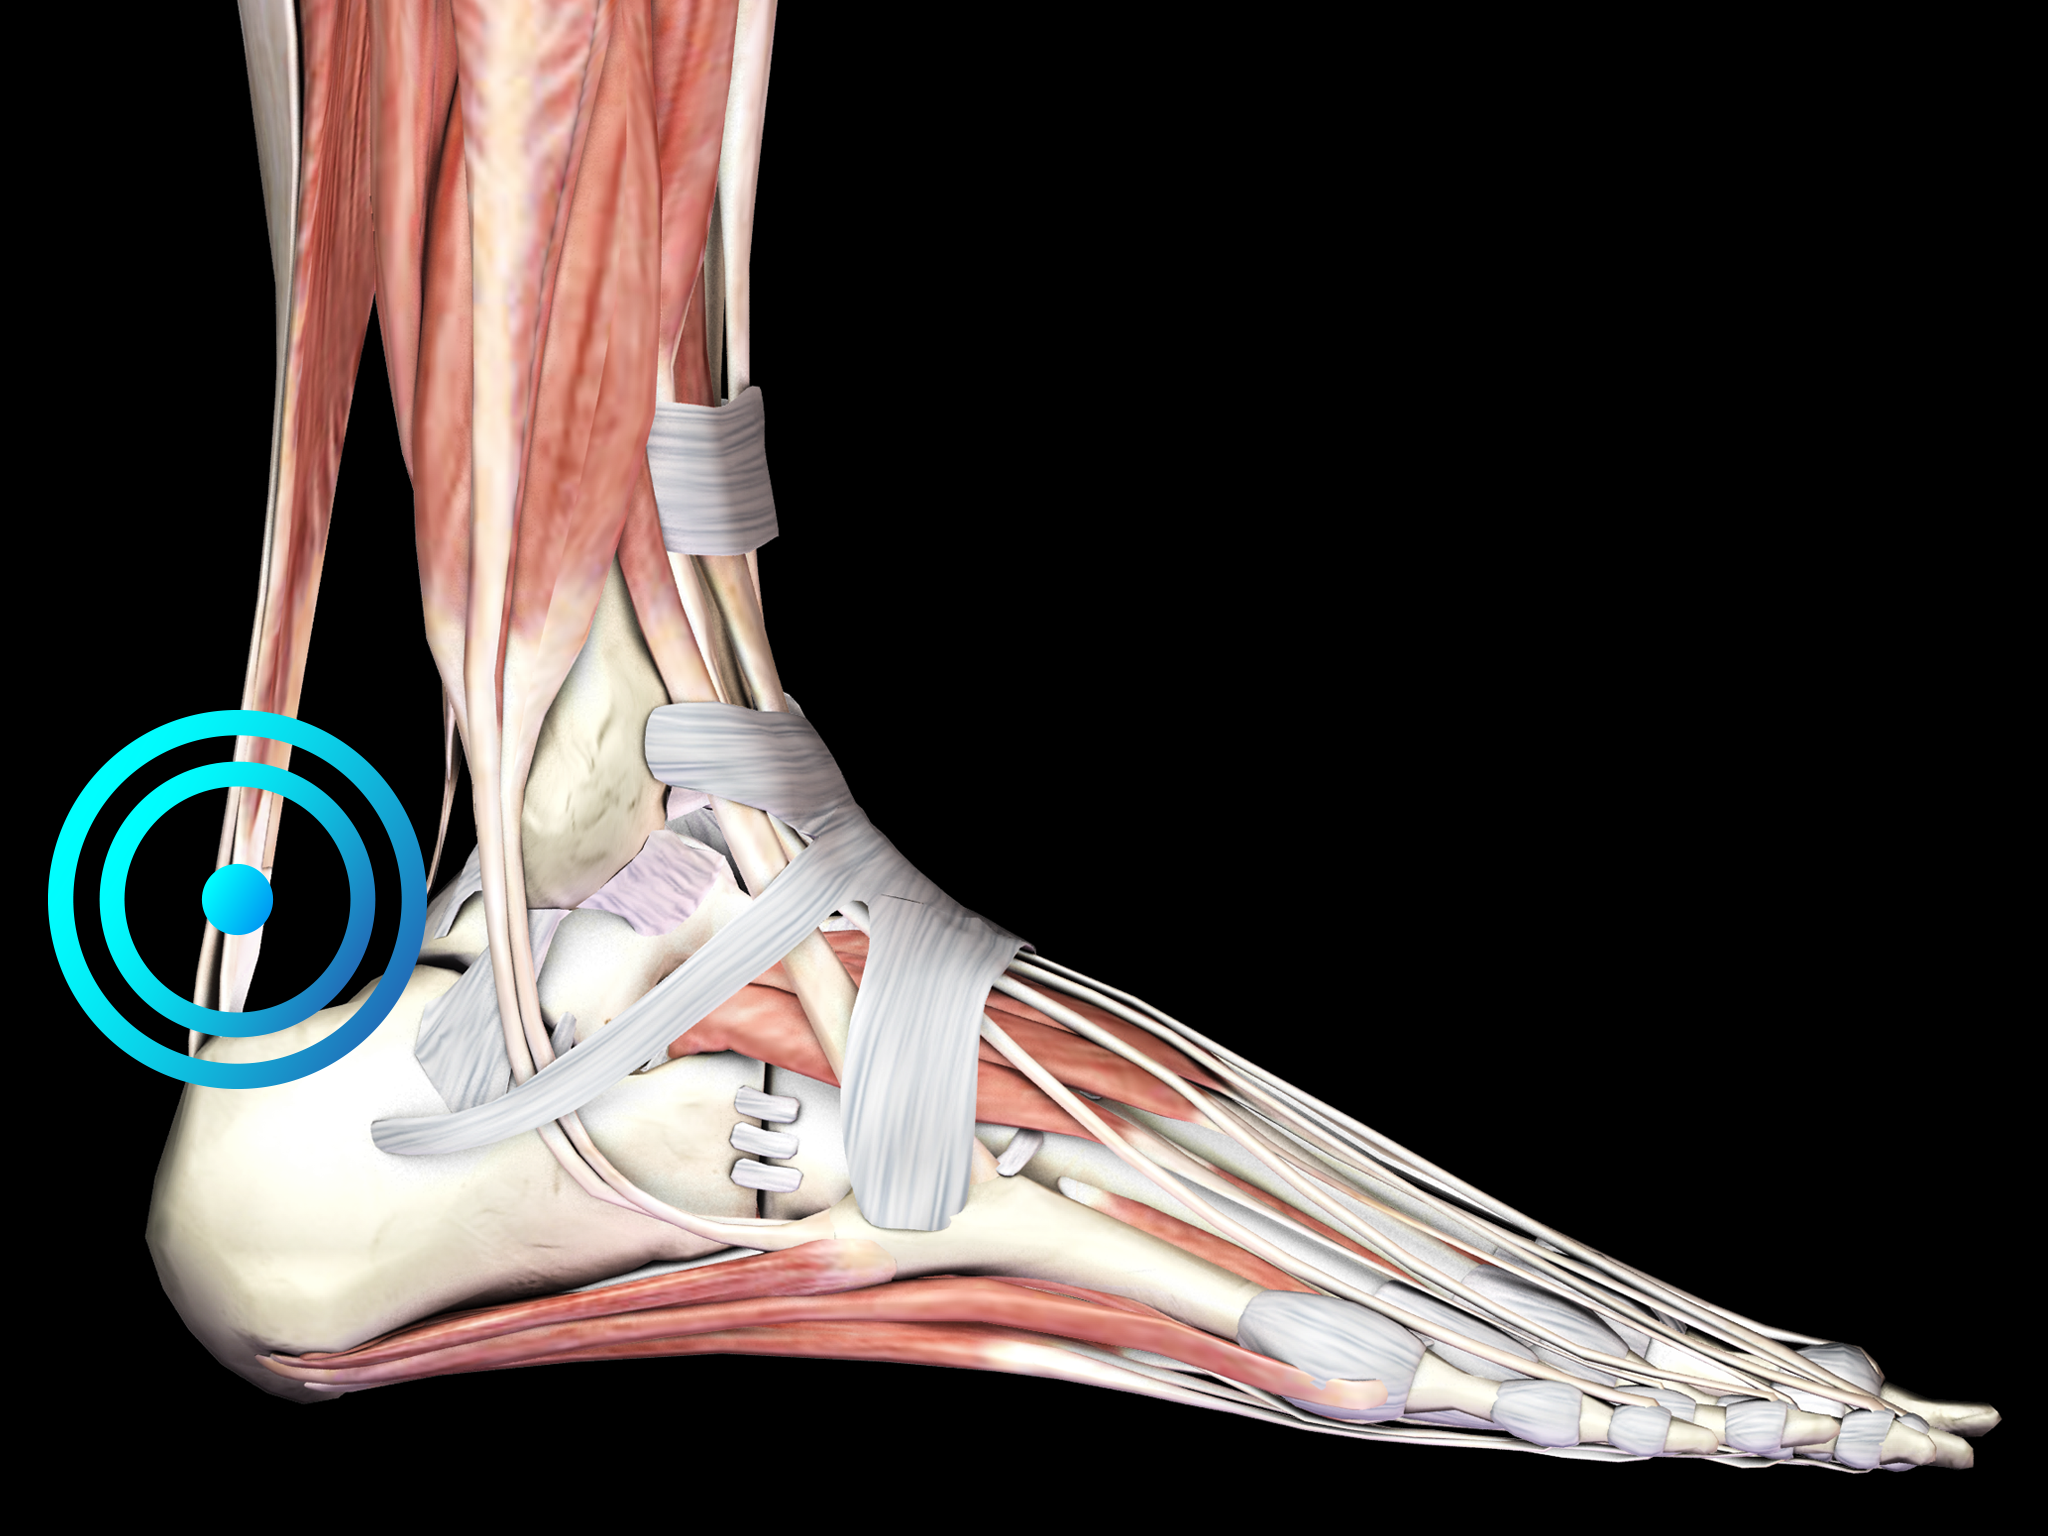 Insertional achilles tendinopathy